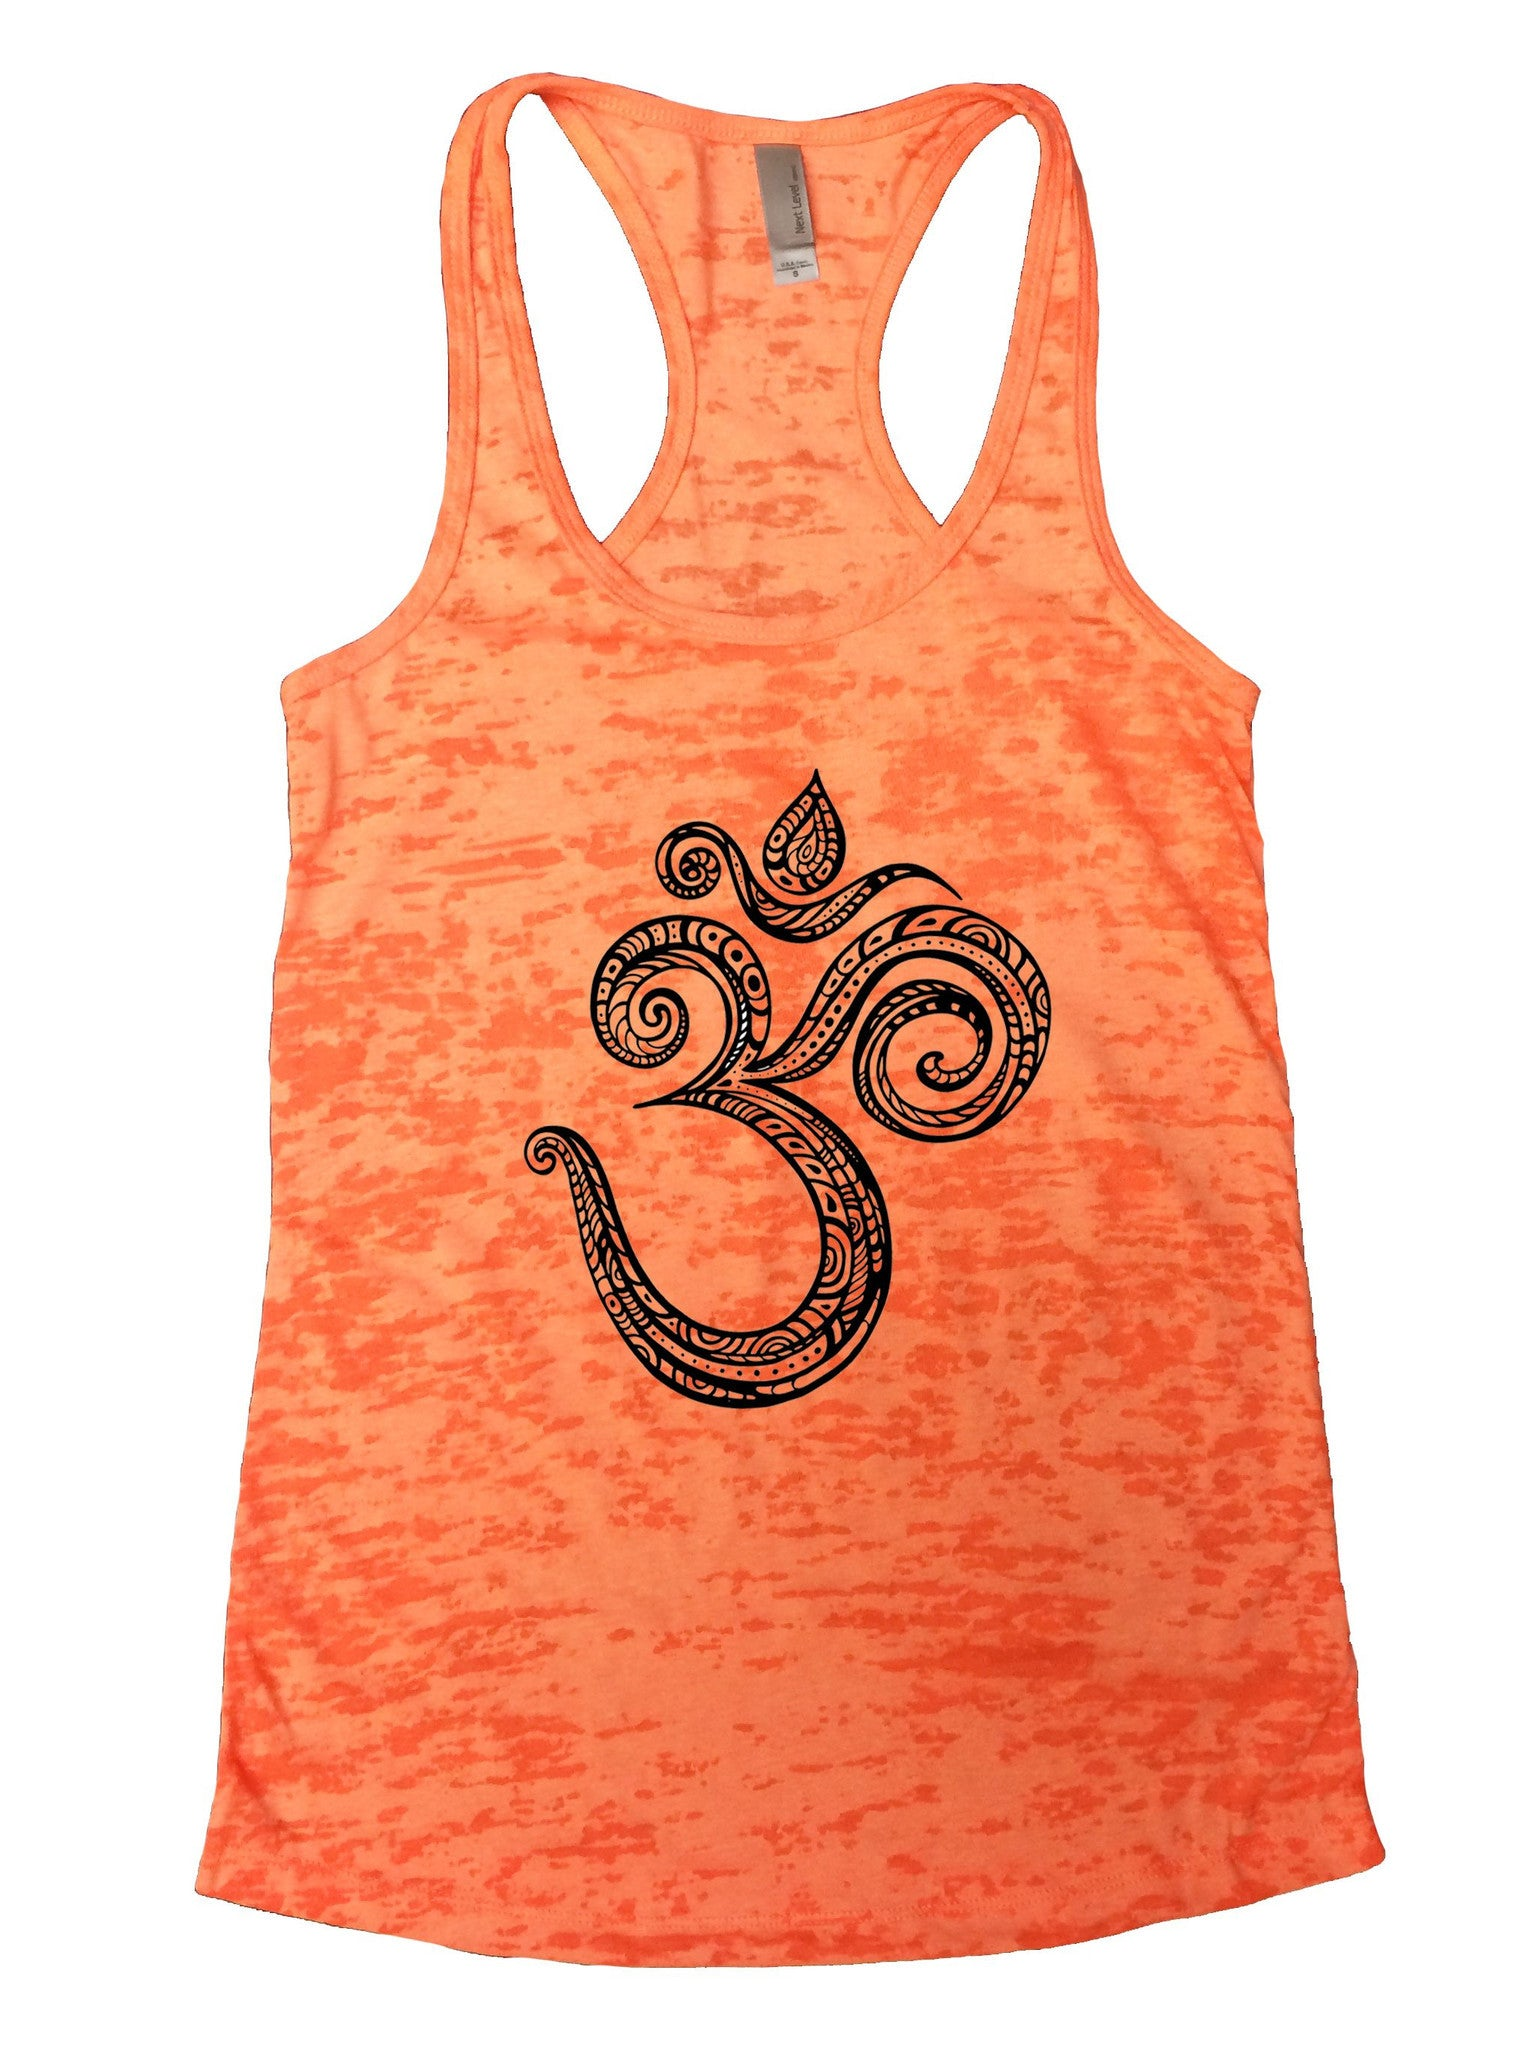 Ohm Burnout Tank Top By BurnoutTankTops.com - 908 - Funny Shirts Tank Tops Burnouts and Triblends  - 2